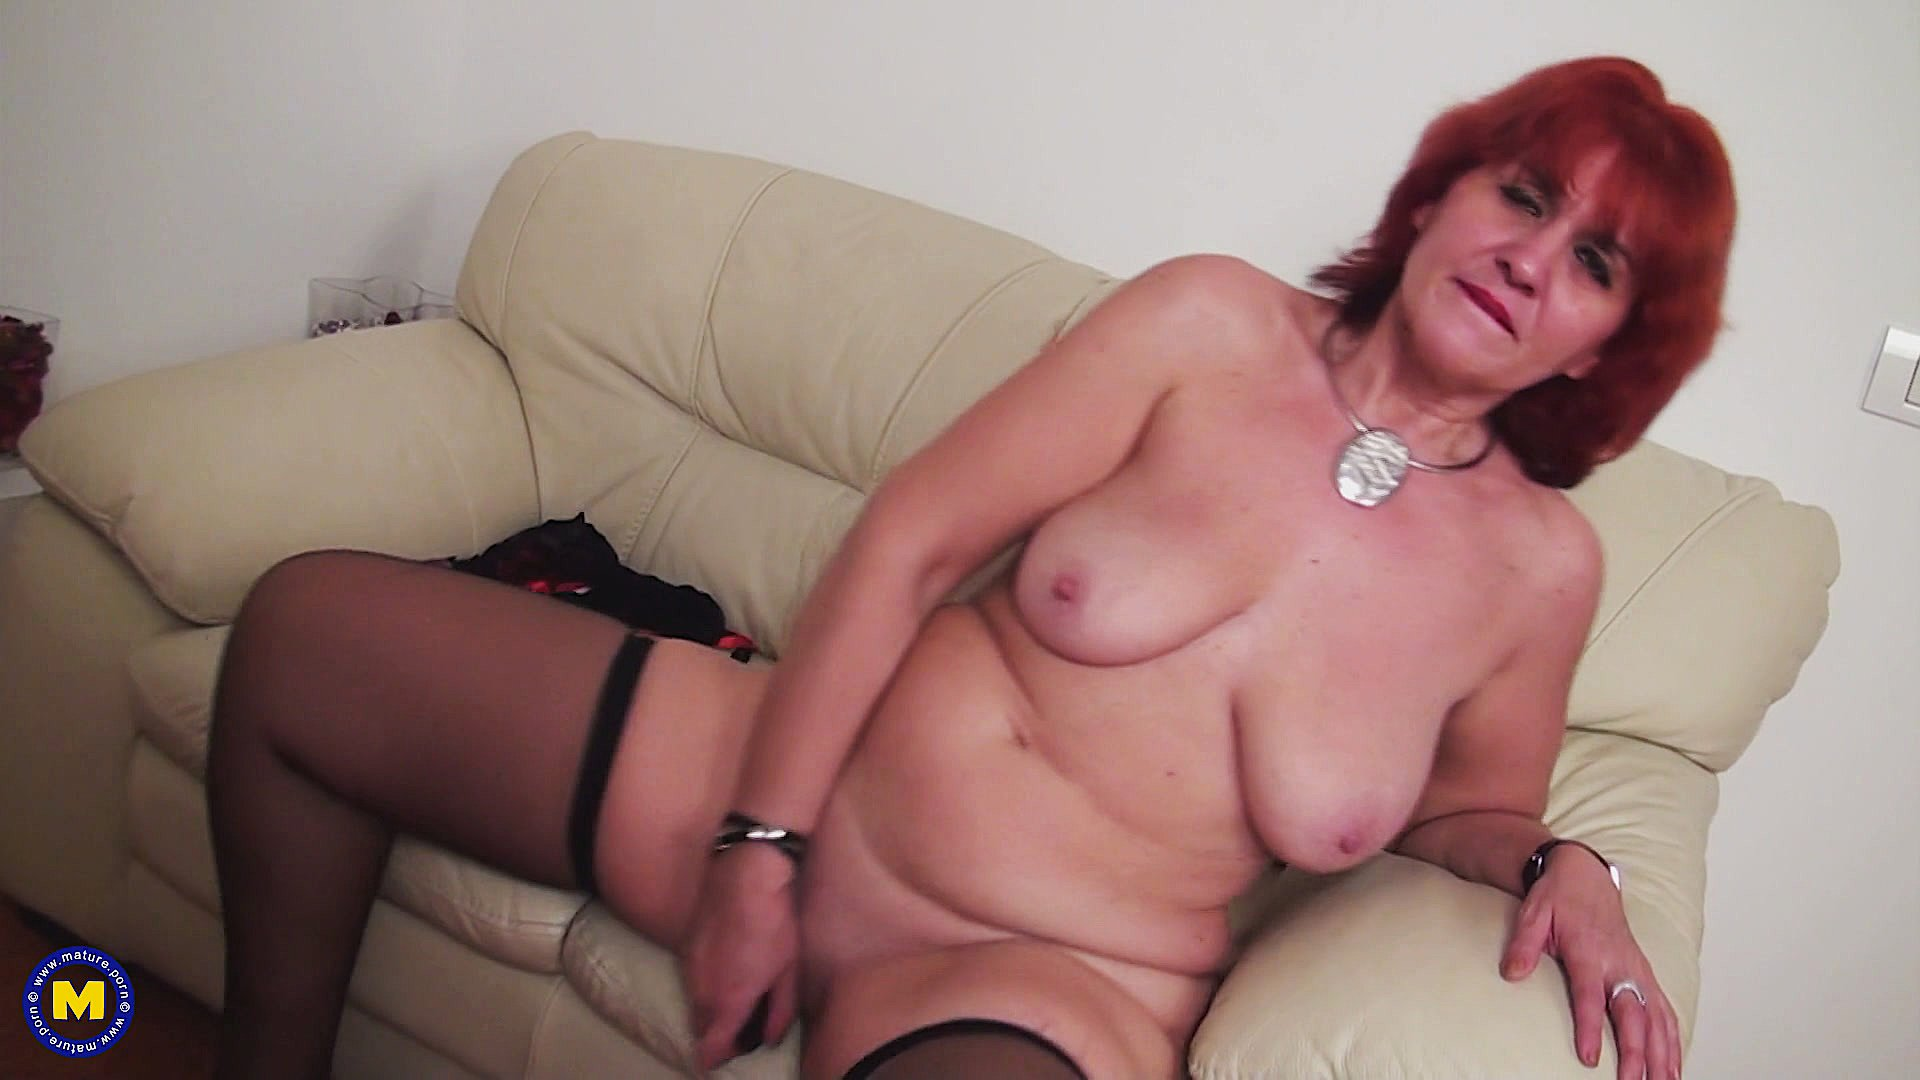 Mature redhead women with toys galleries